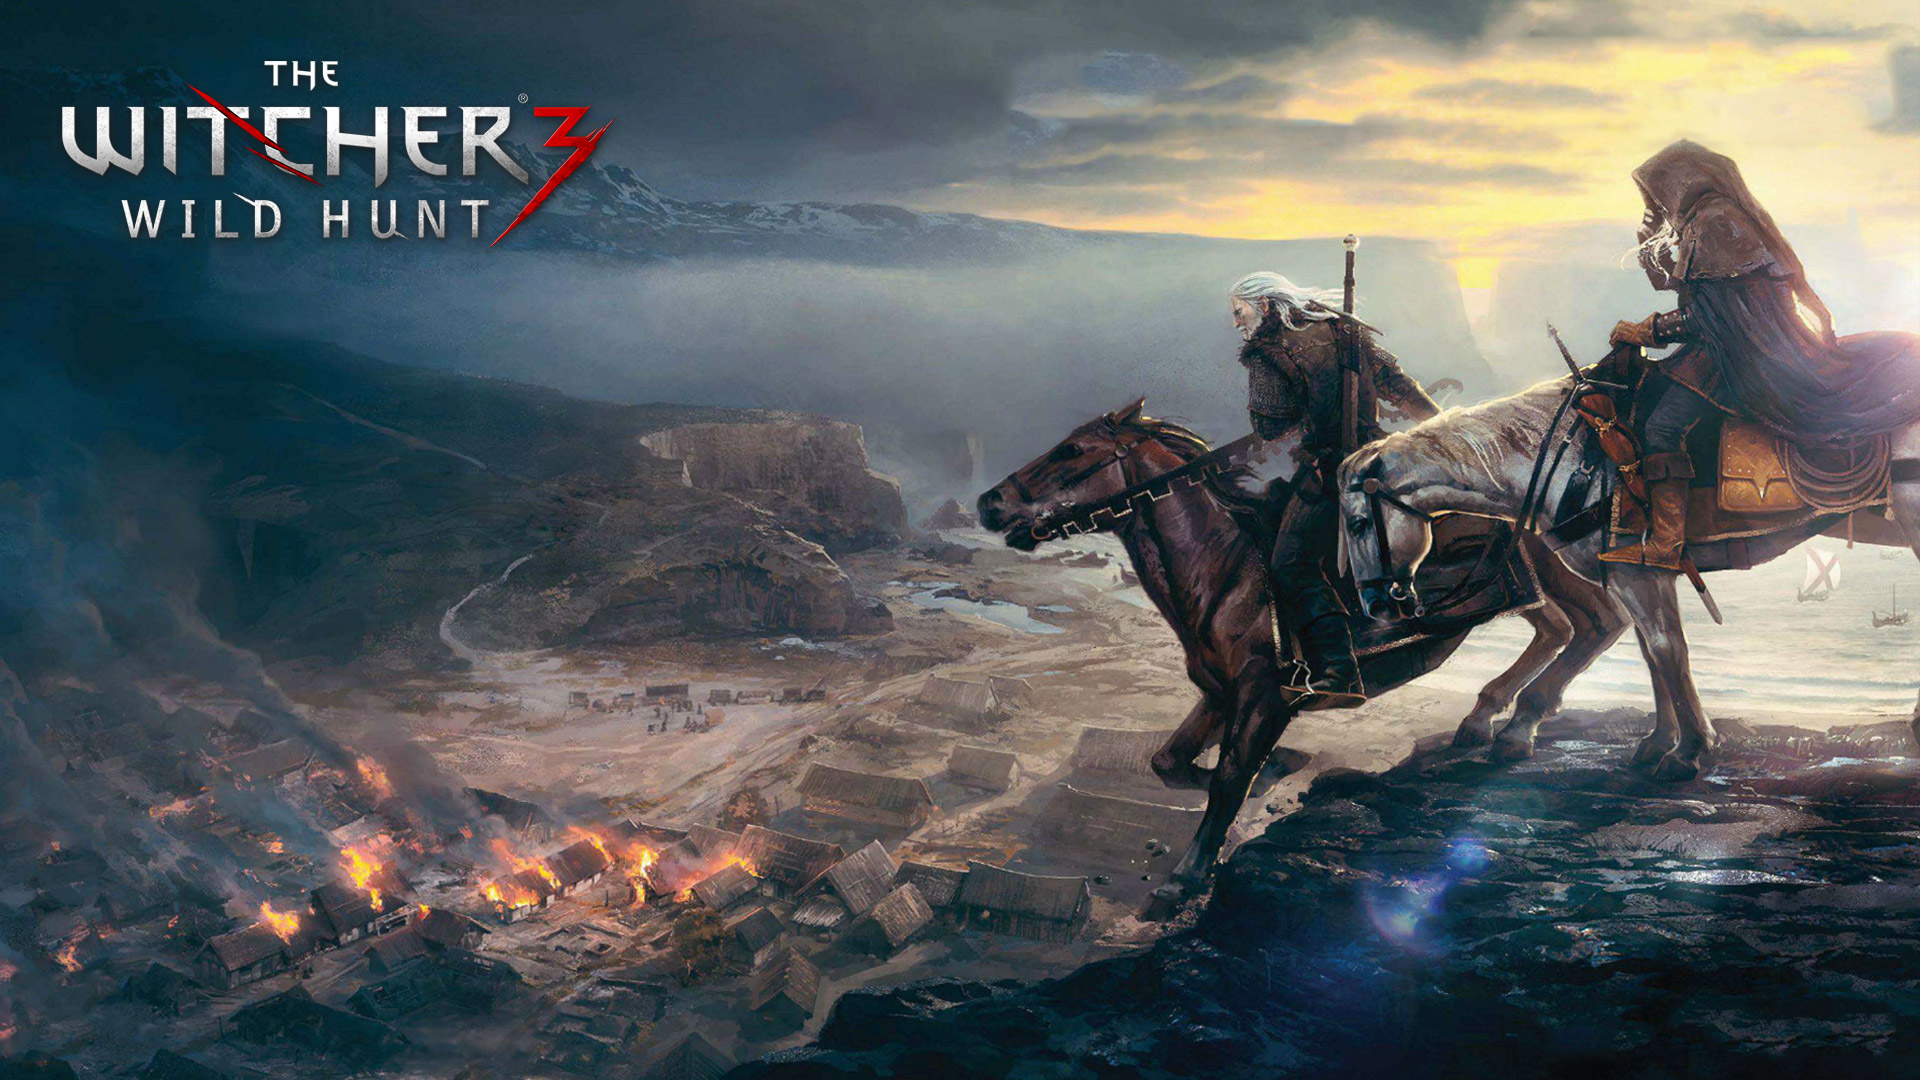 The Witcher 3 wallpaper 11